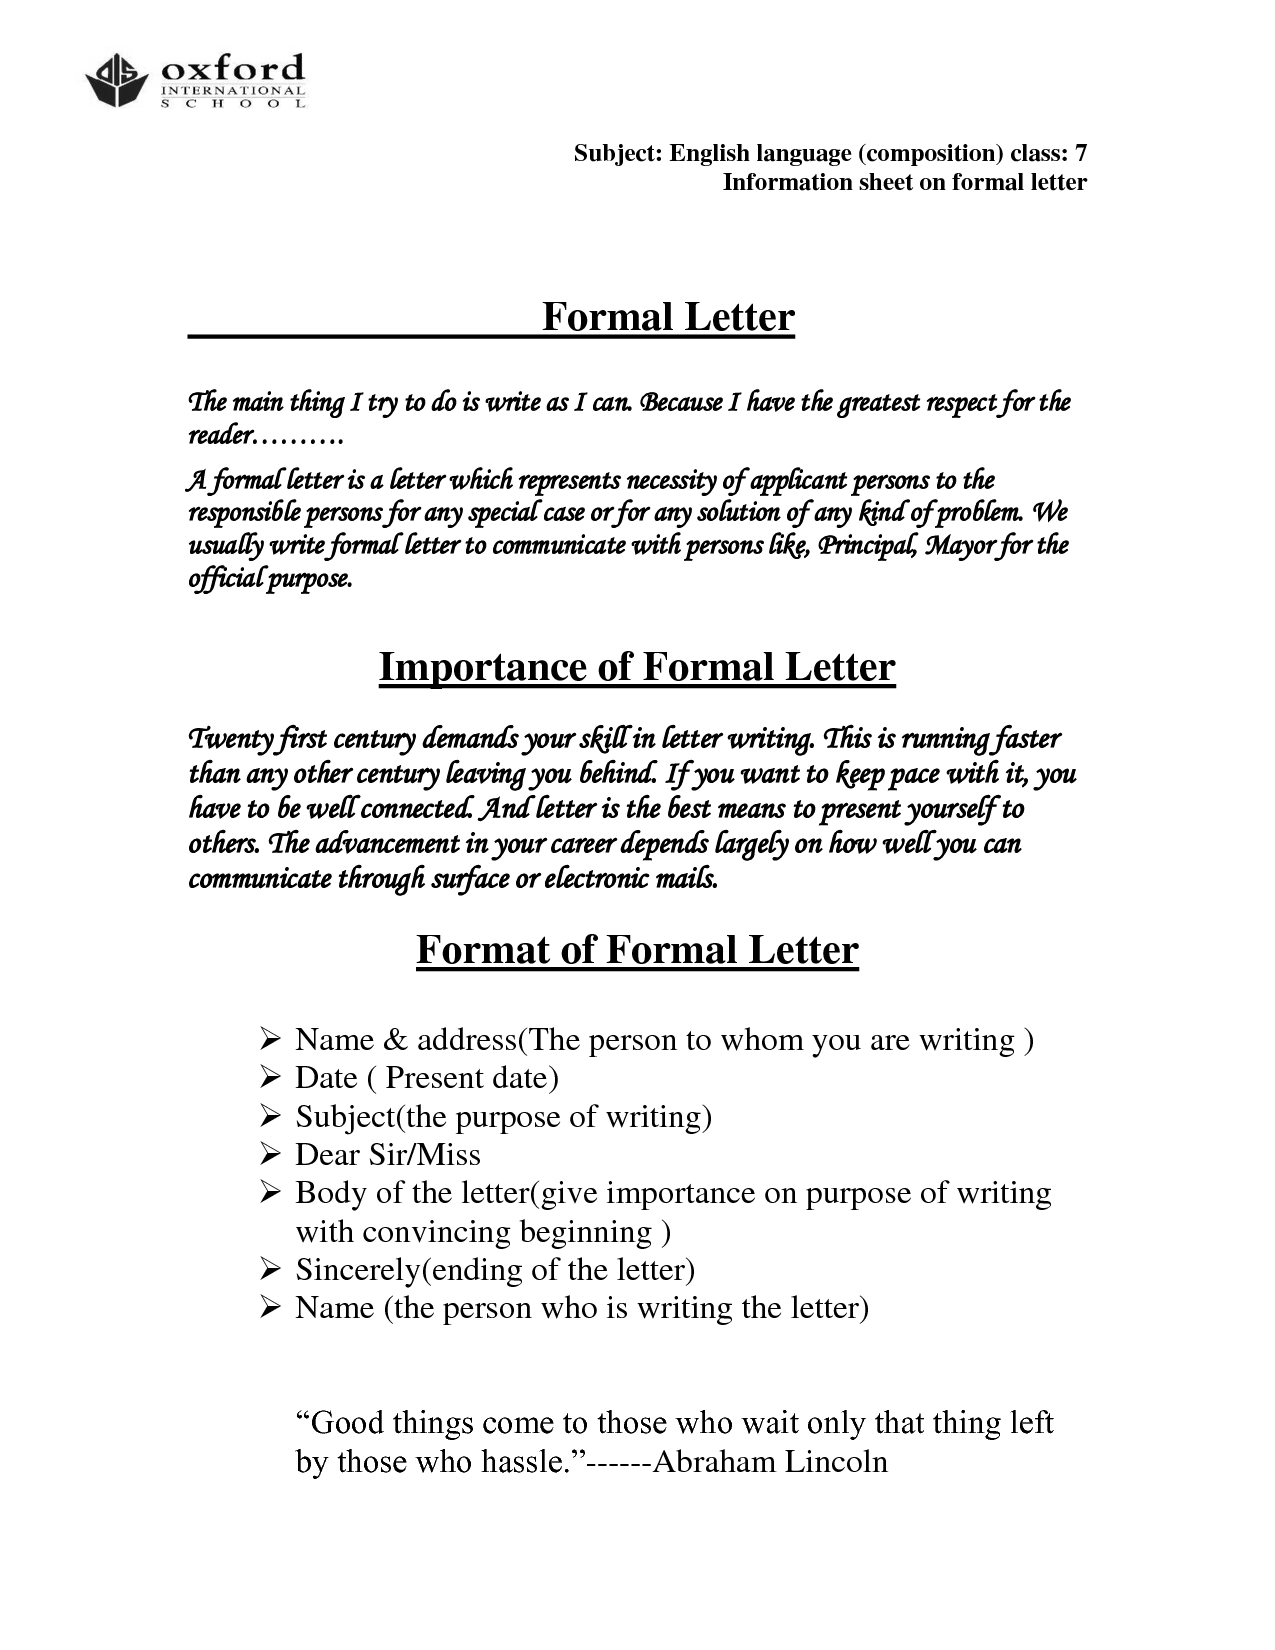 Free example letter informal letter format to teacher fresh letter feel free to download our modern editable and targeted templates cover letter templates resume templates business card template etc spiritdancerdesigns Choice Image